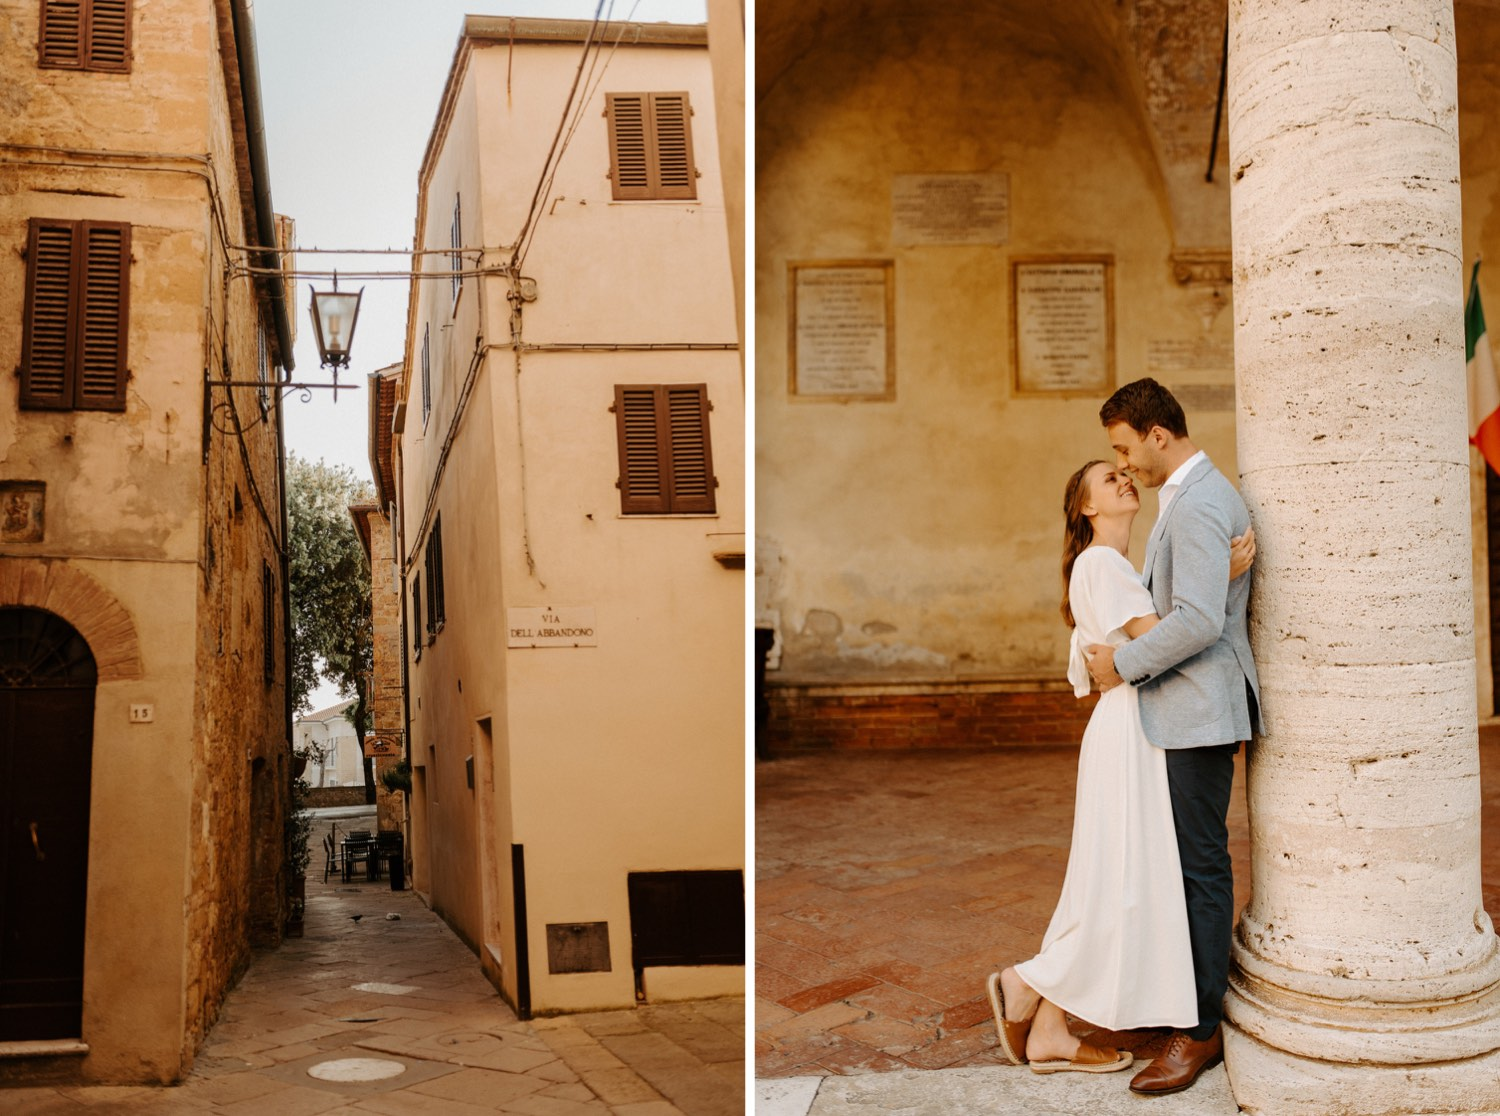 44_ali-dirk-pre-wedding-179_ali-dirk-pre-wedding-197_tuscany_siena_destination_wedding_italy_photography.jpg